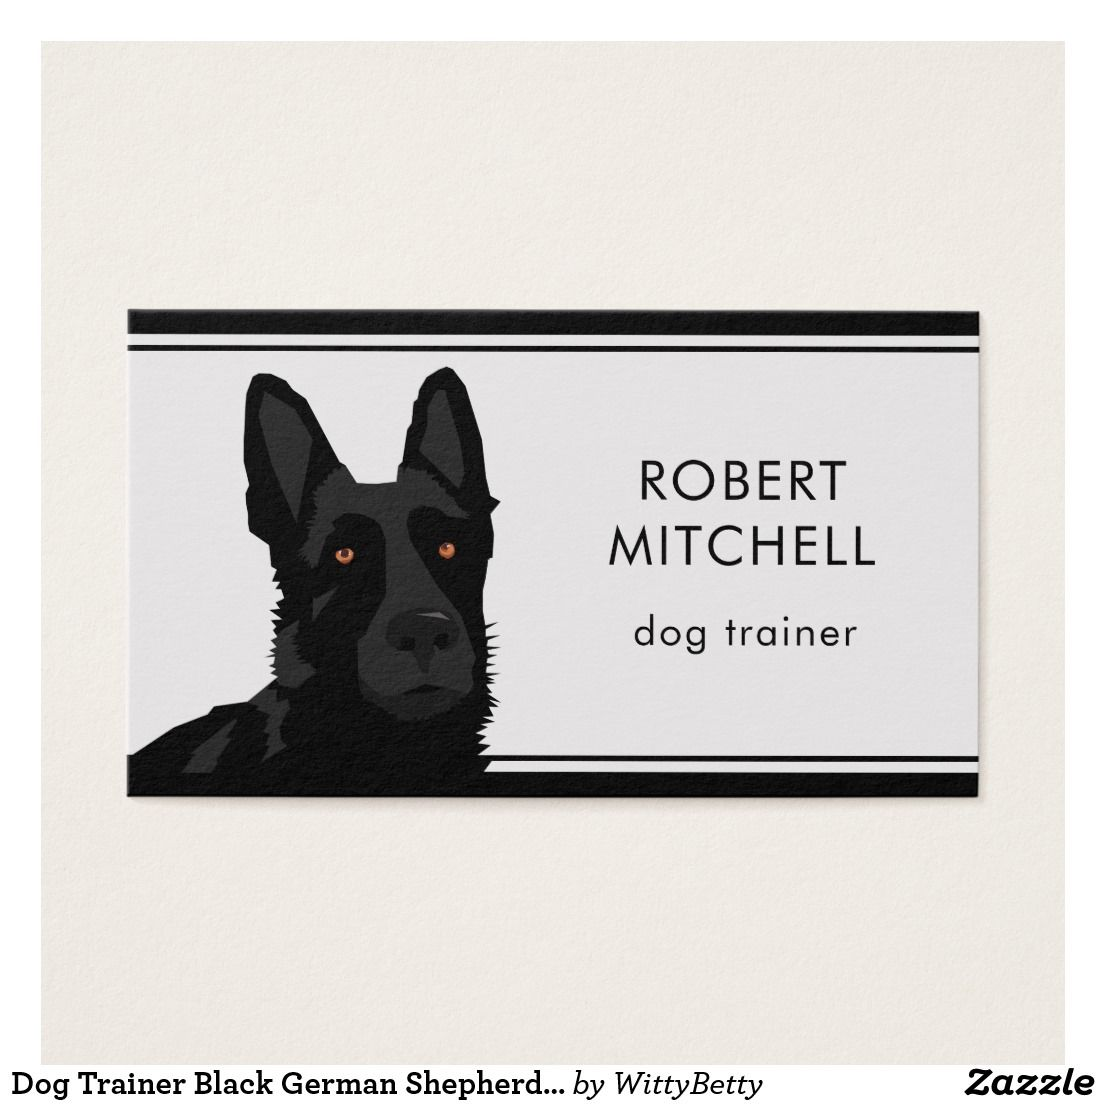 Dog Trainer Black German Shepherd Business Card Zazzle Co Uk